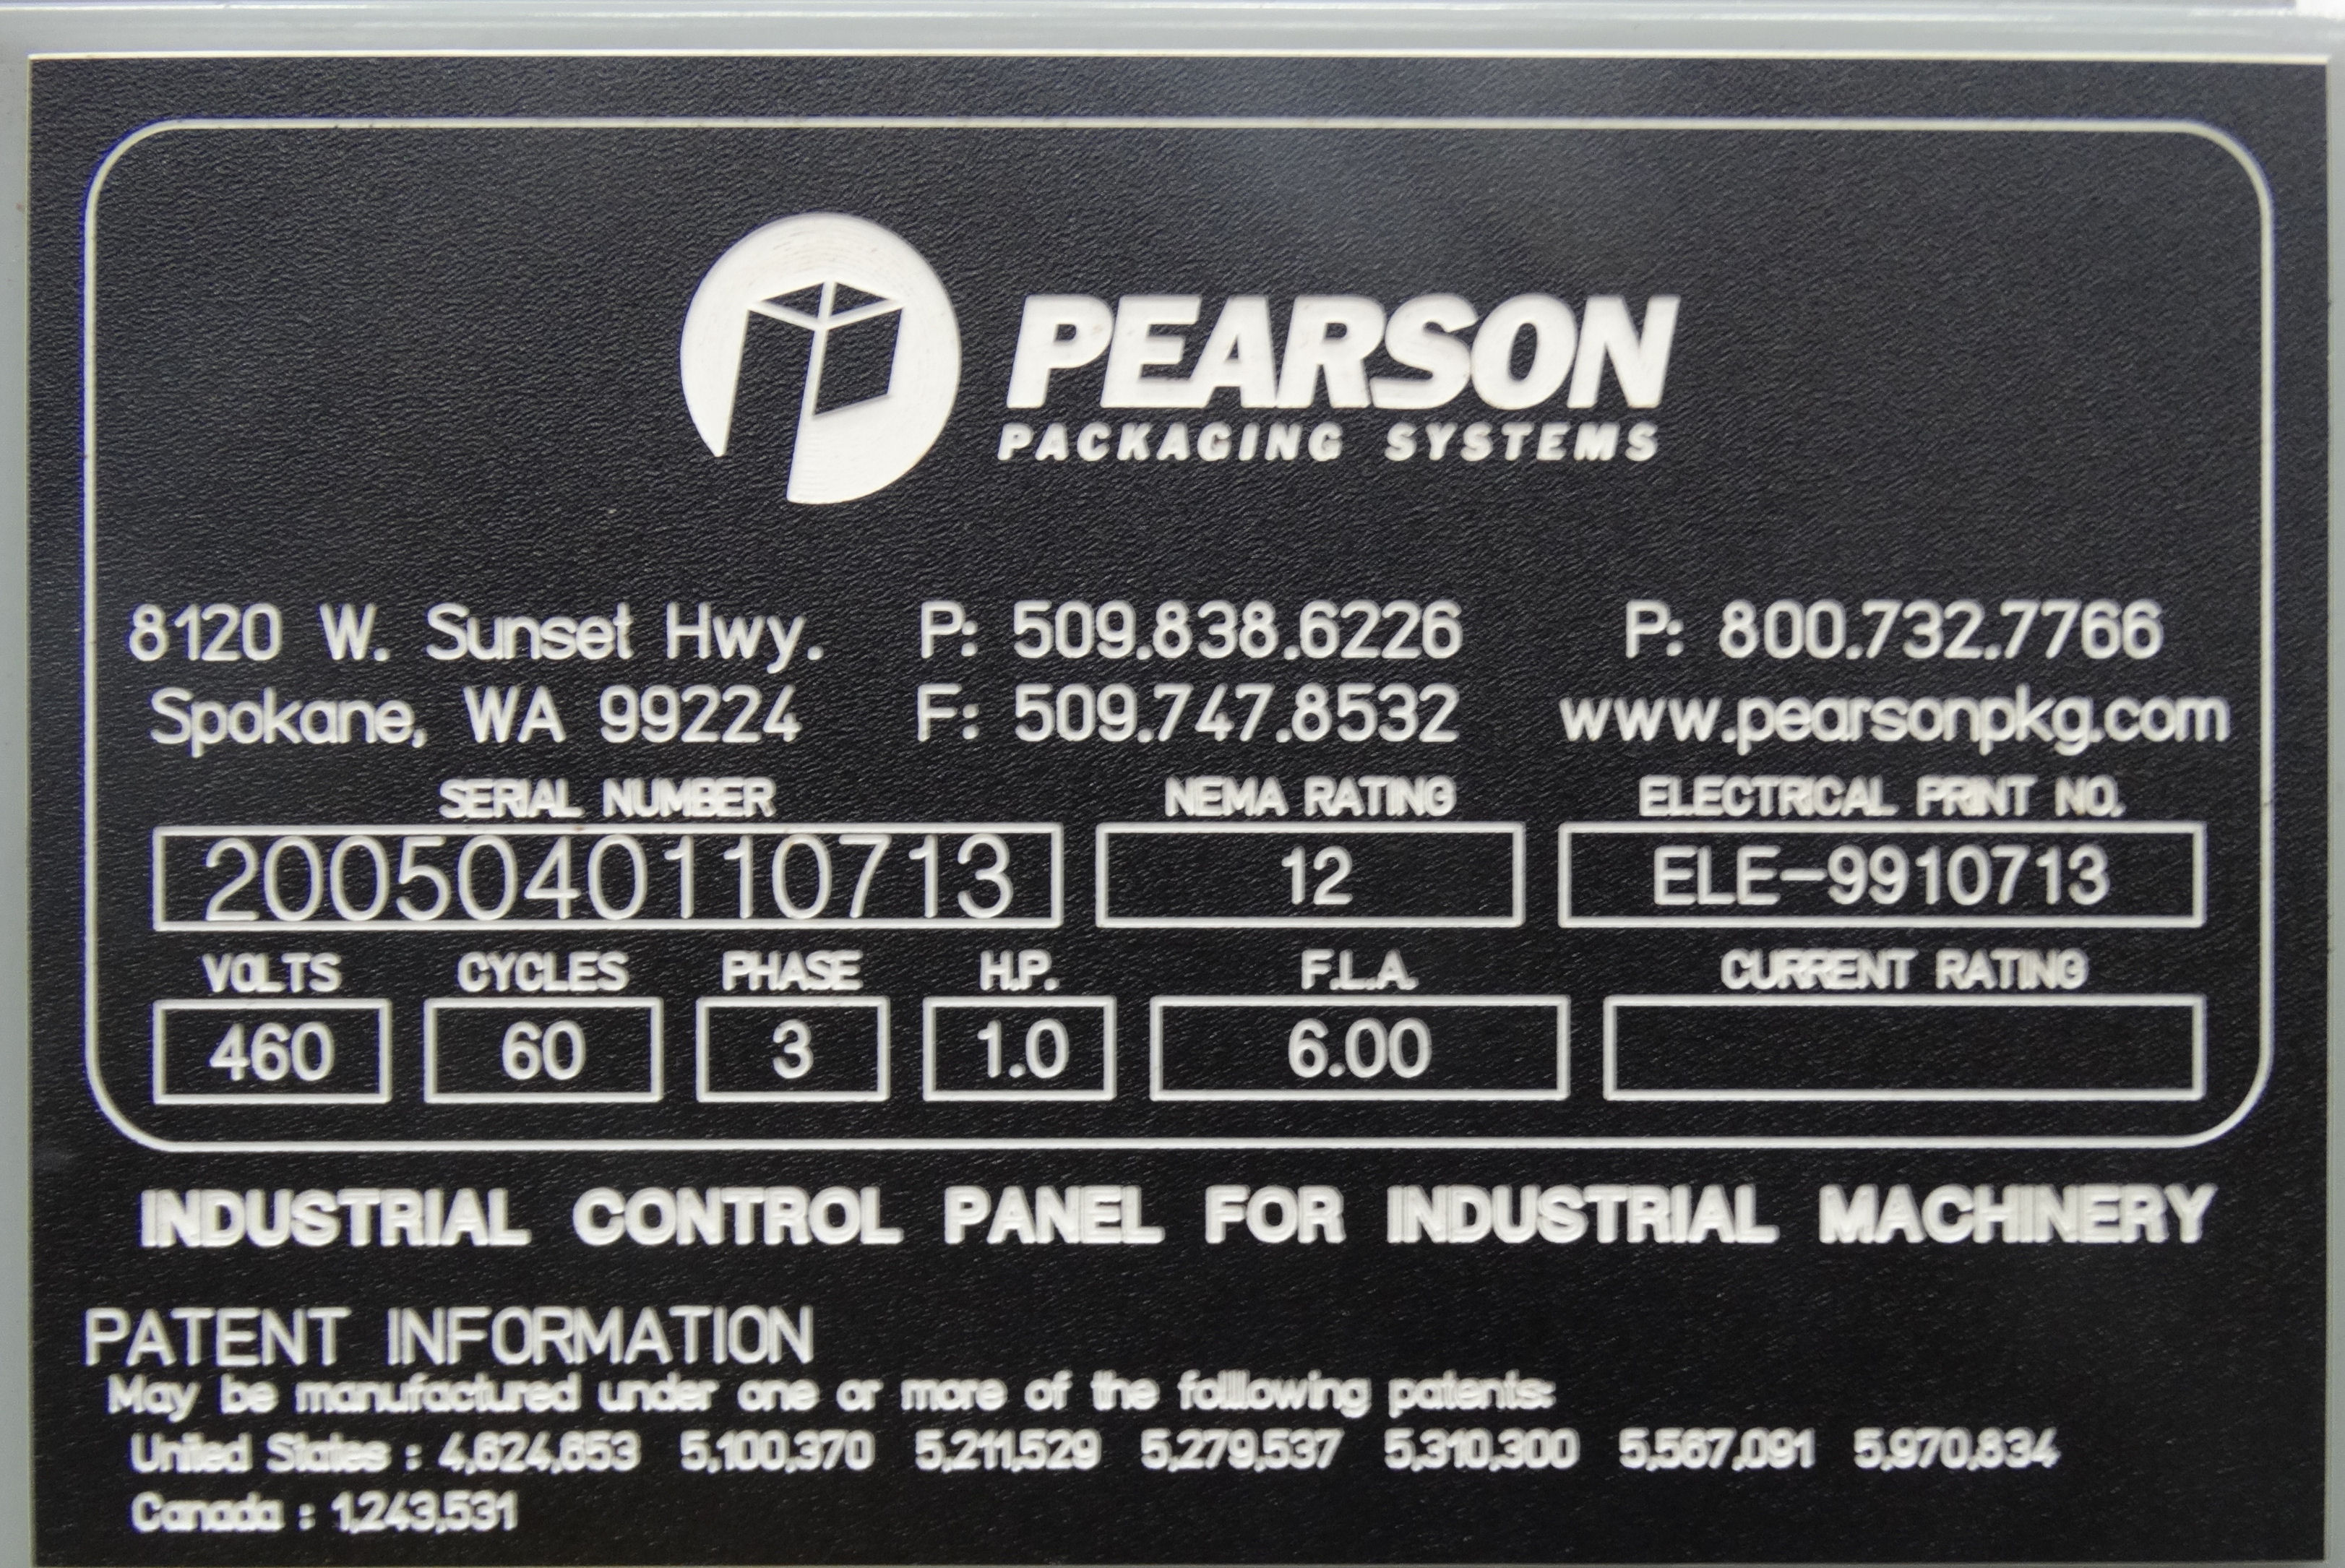 Pearson N401-IT Top Case Sealer B4397 - Image 11 of 11